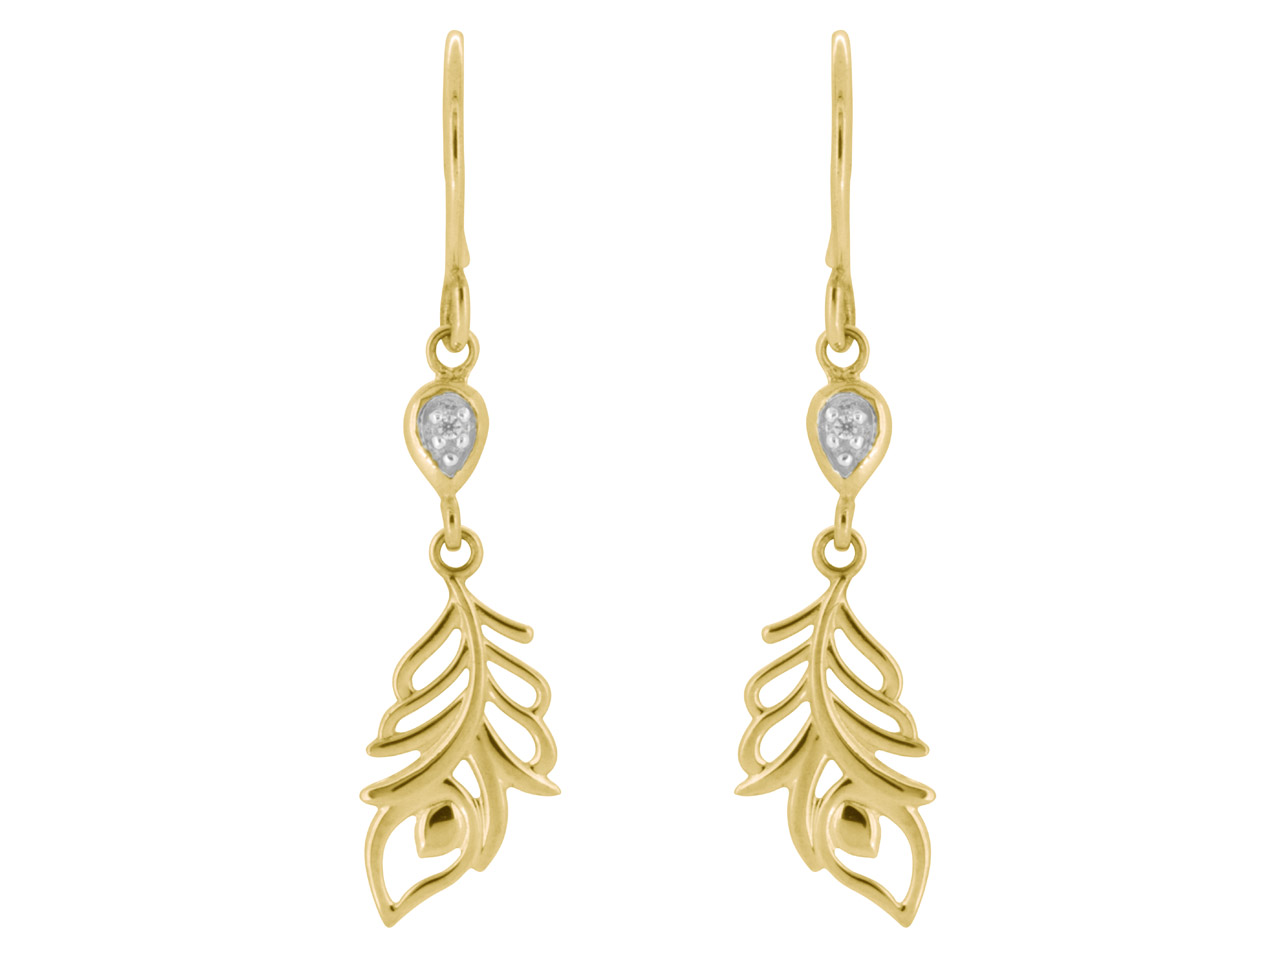 9ct Yellow Feather Drop Earrings   Set With 2 1mm Cz's